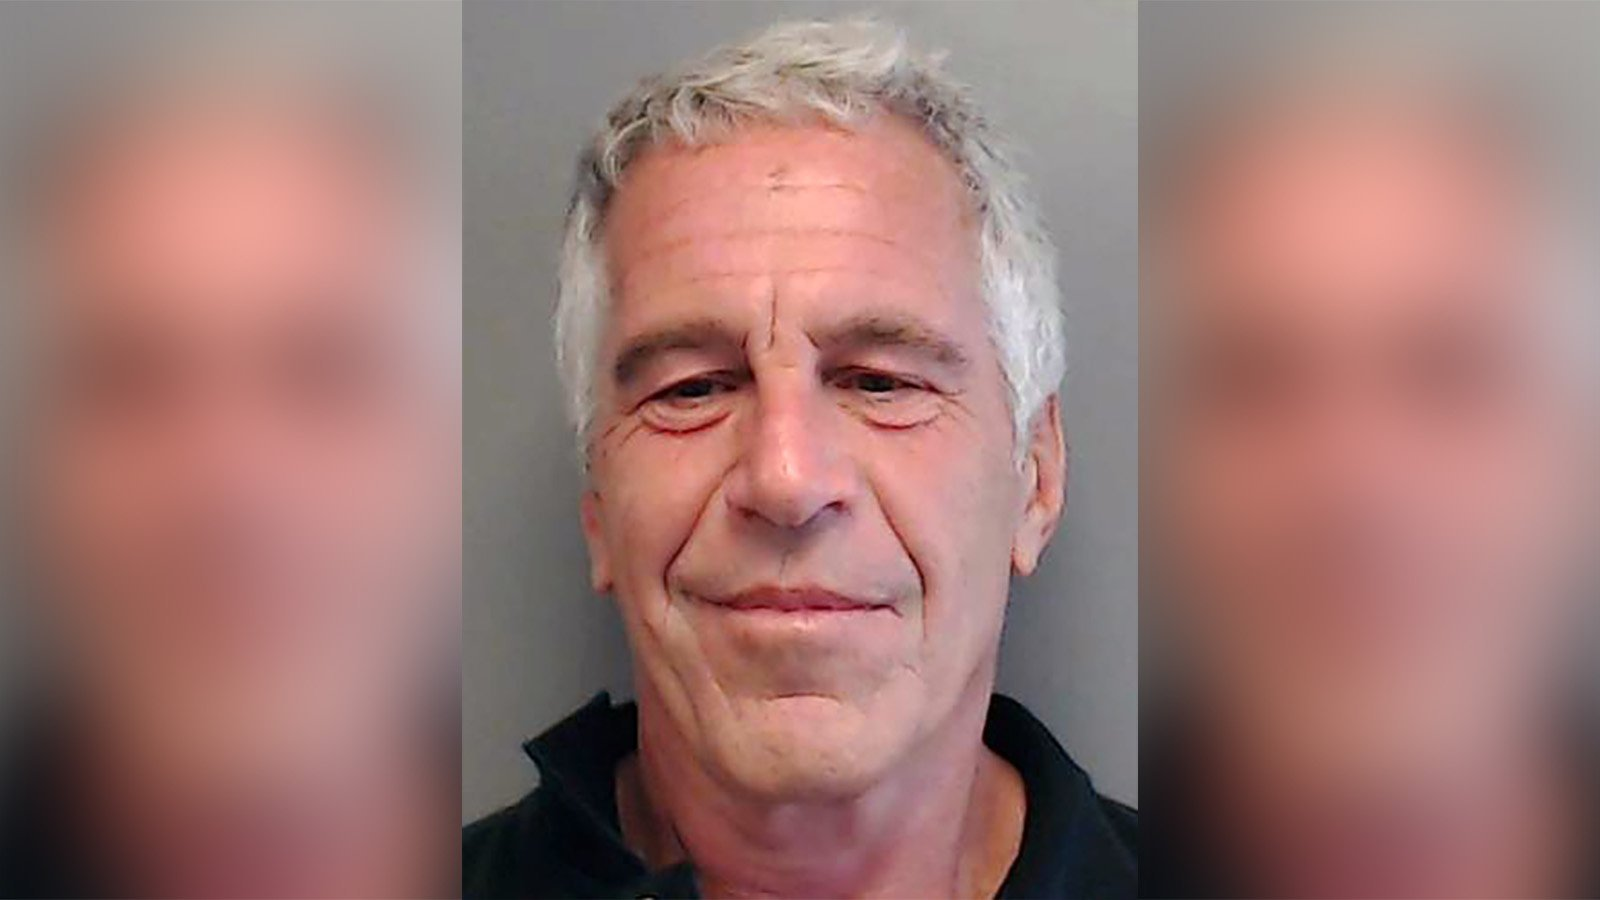 A prison worker on duty at the time of Jeffrey Epstein's death was offered a plea deal, sources say